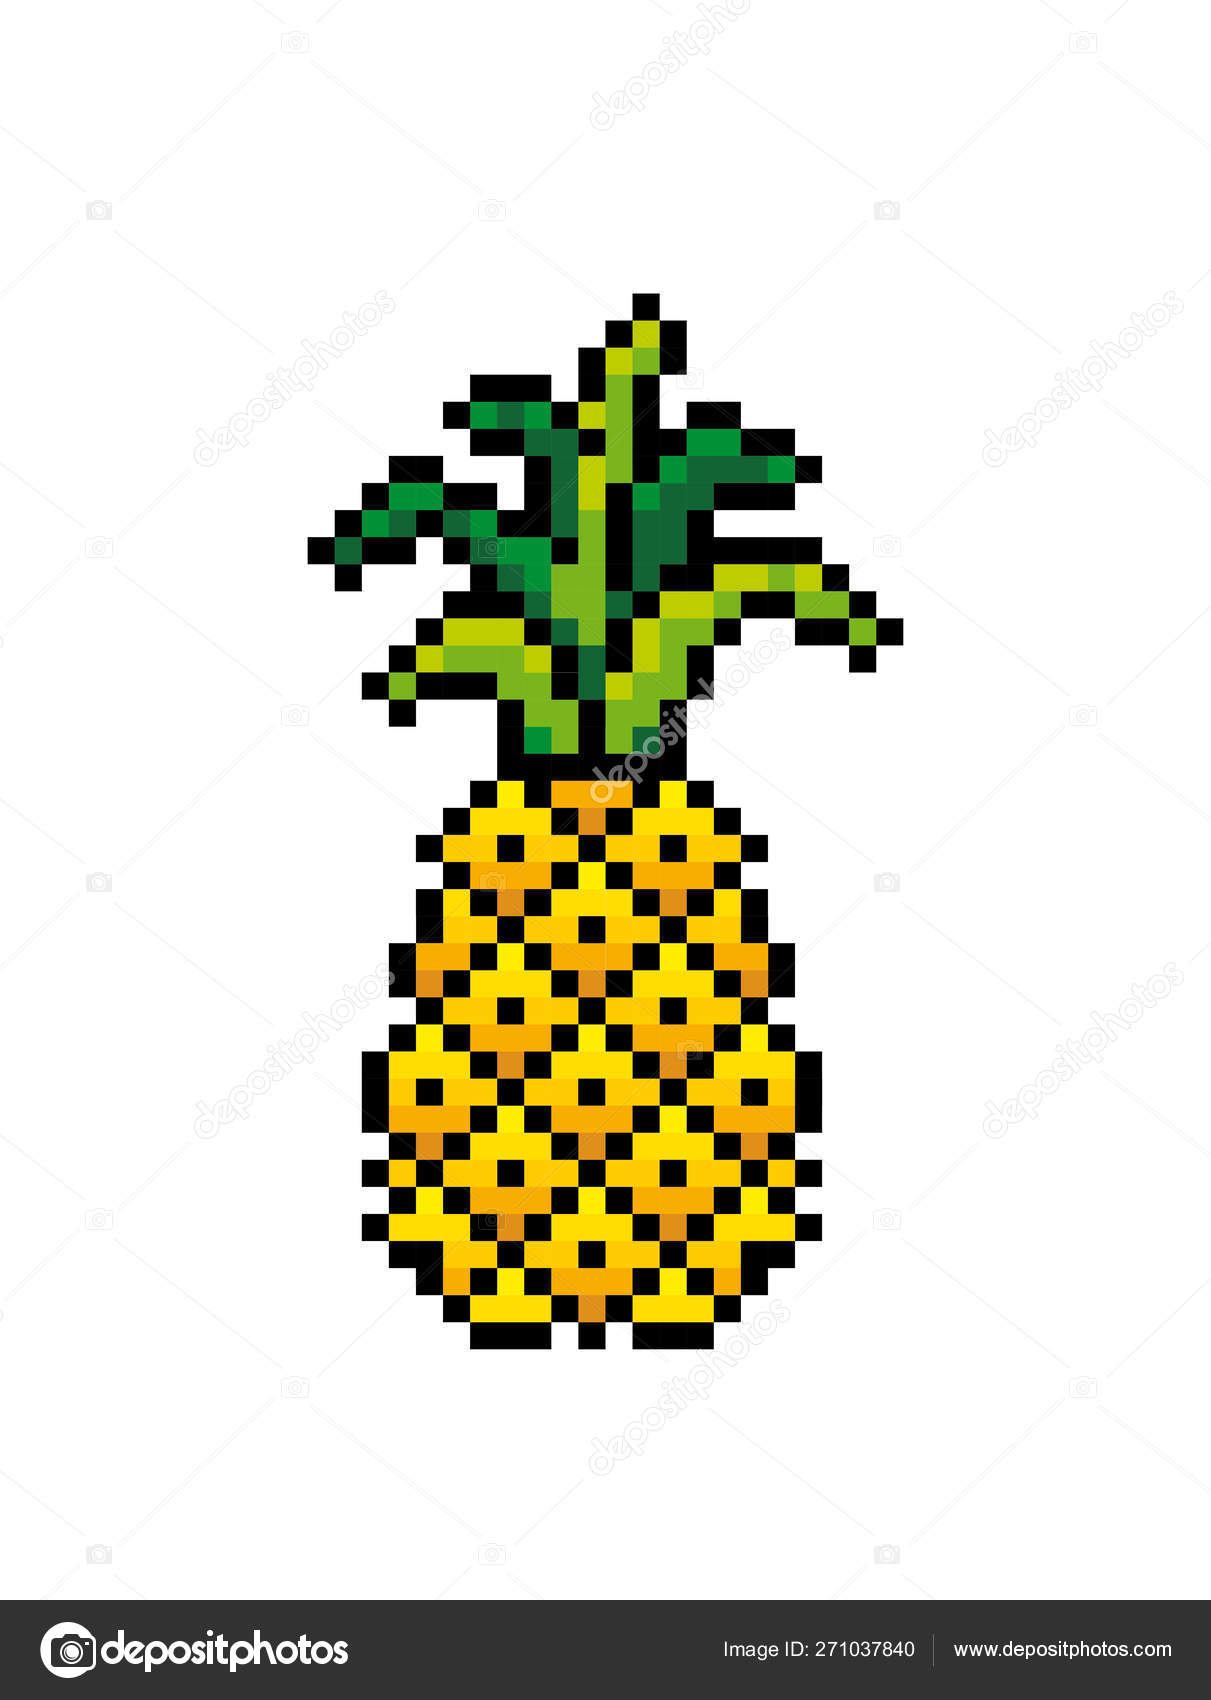 Pineapple Icon Pixel Art Scheme Of Knitting And Embroidery